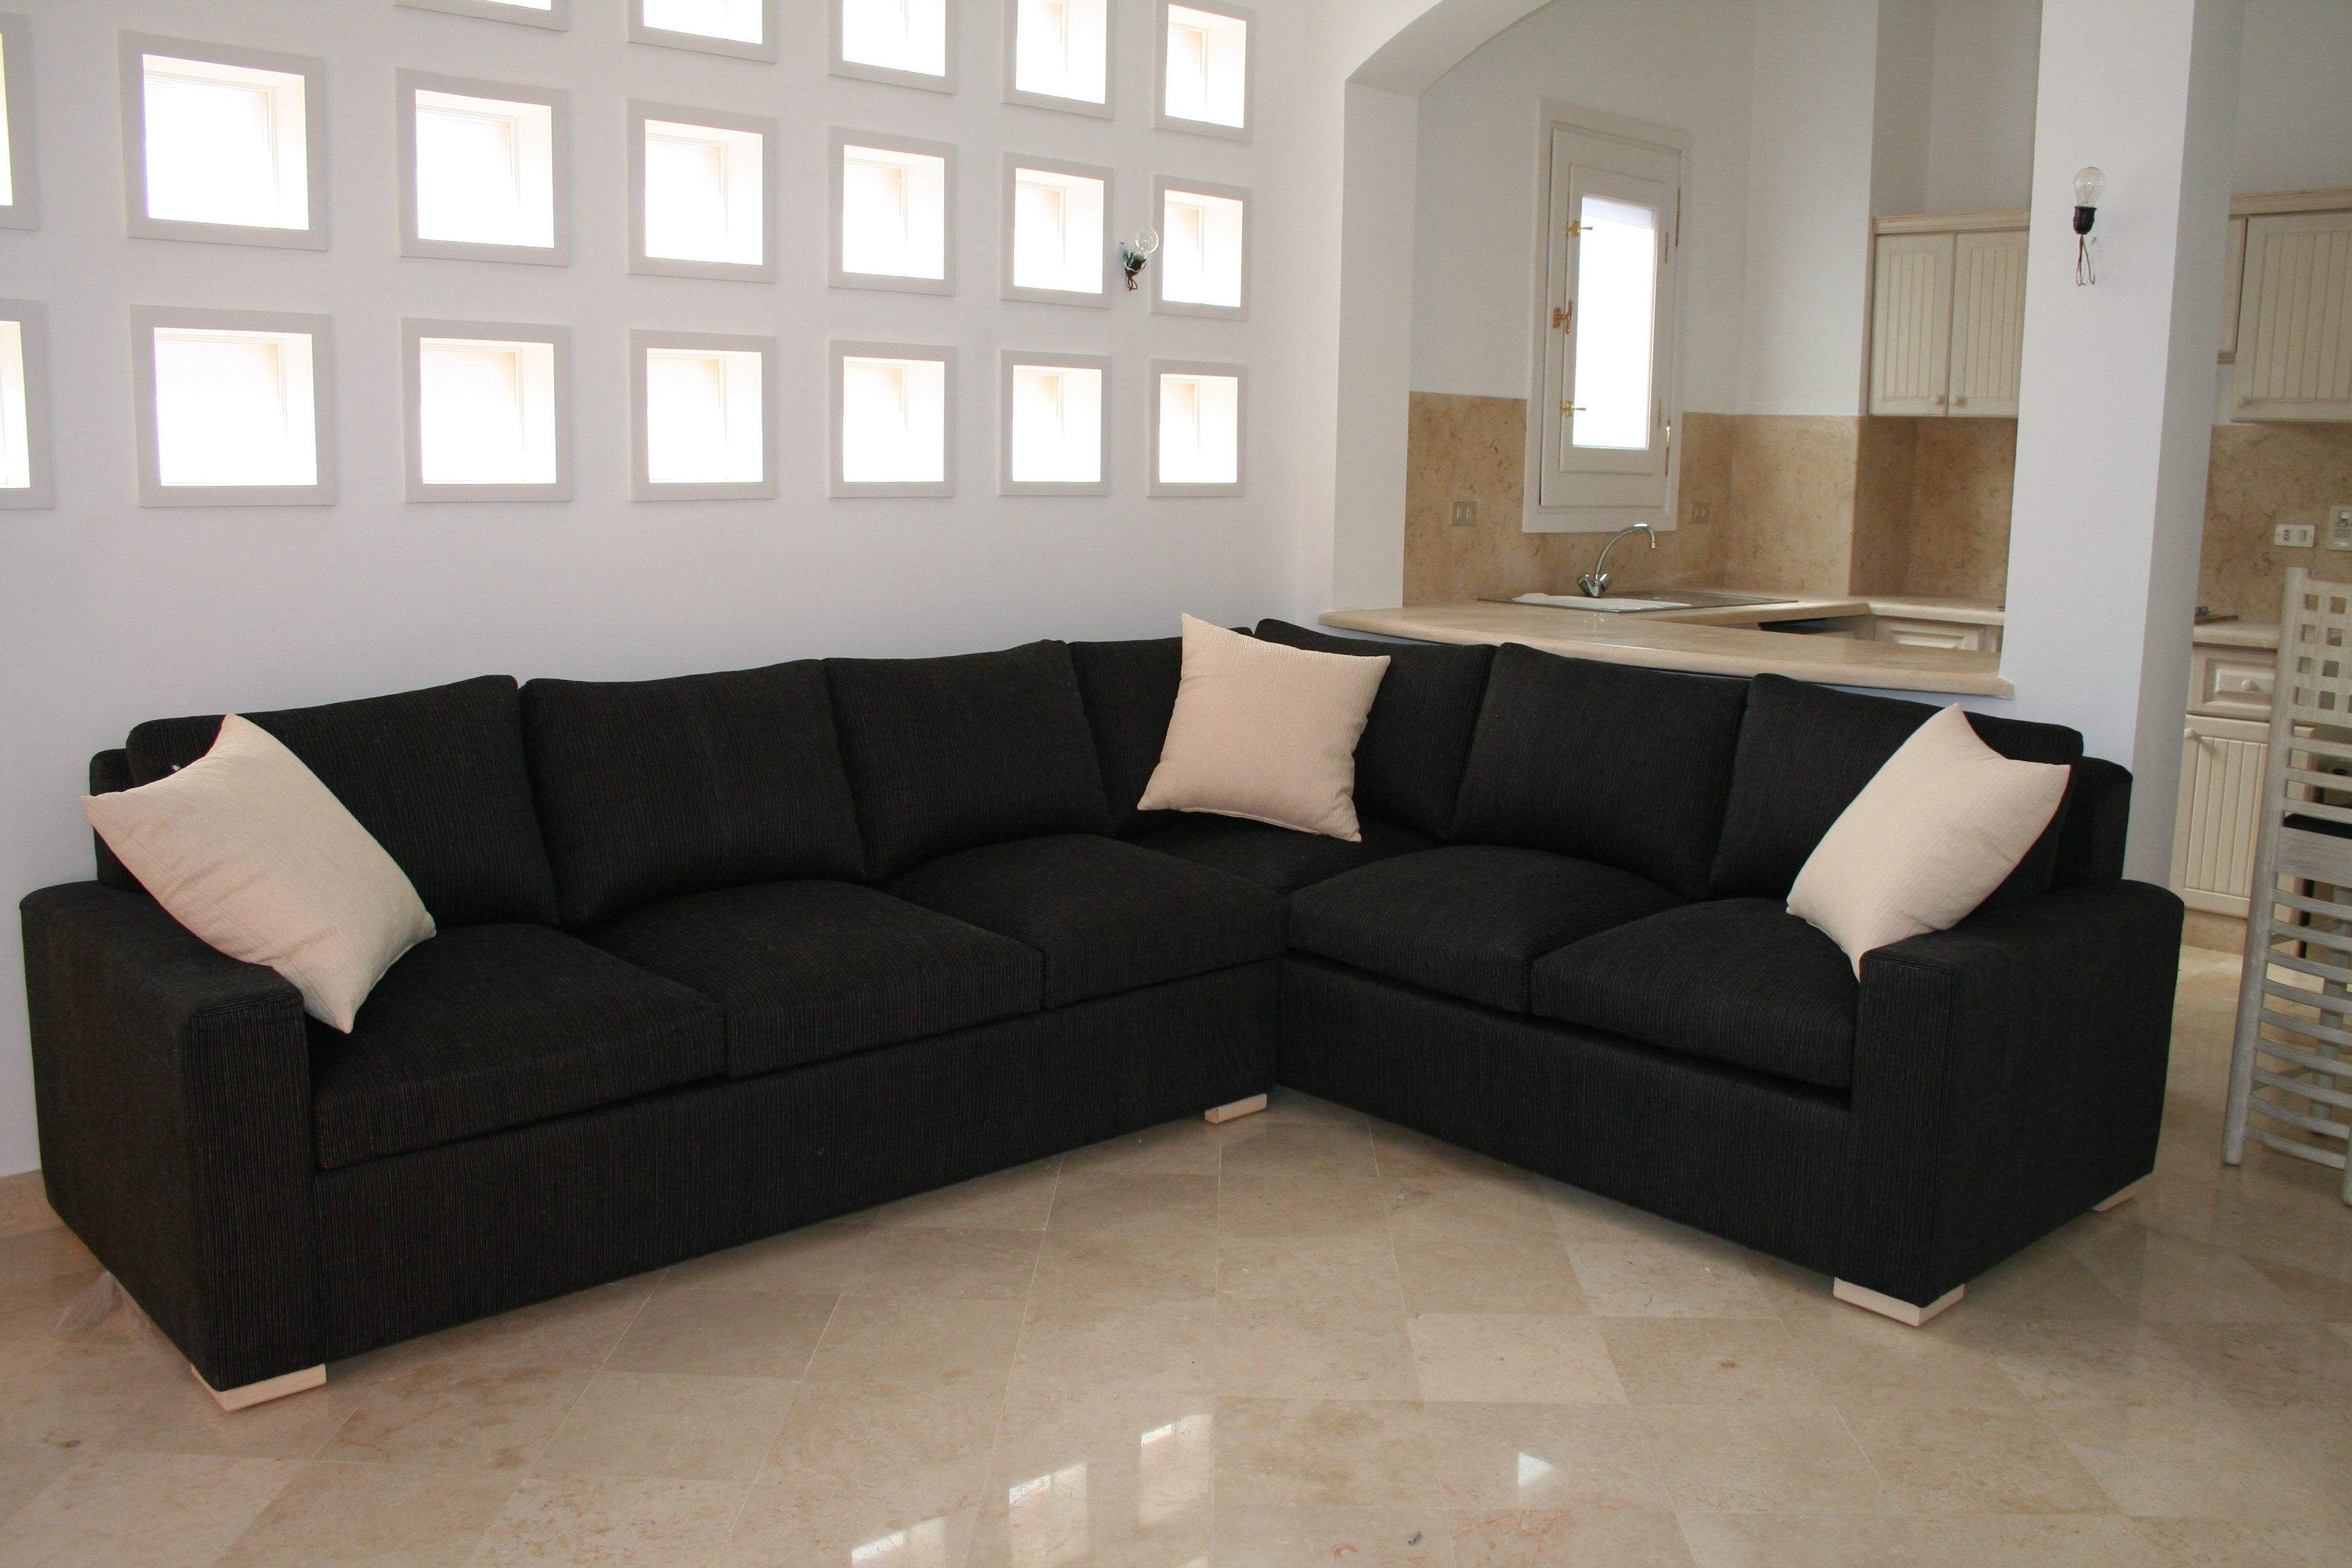 L Shape Couch Best Collections Of Sofas And Couches Sofacouchs